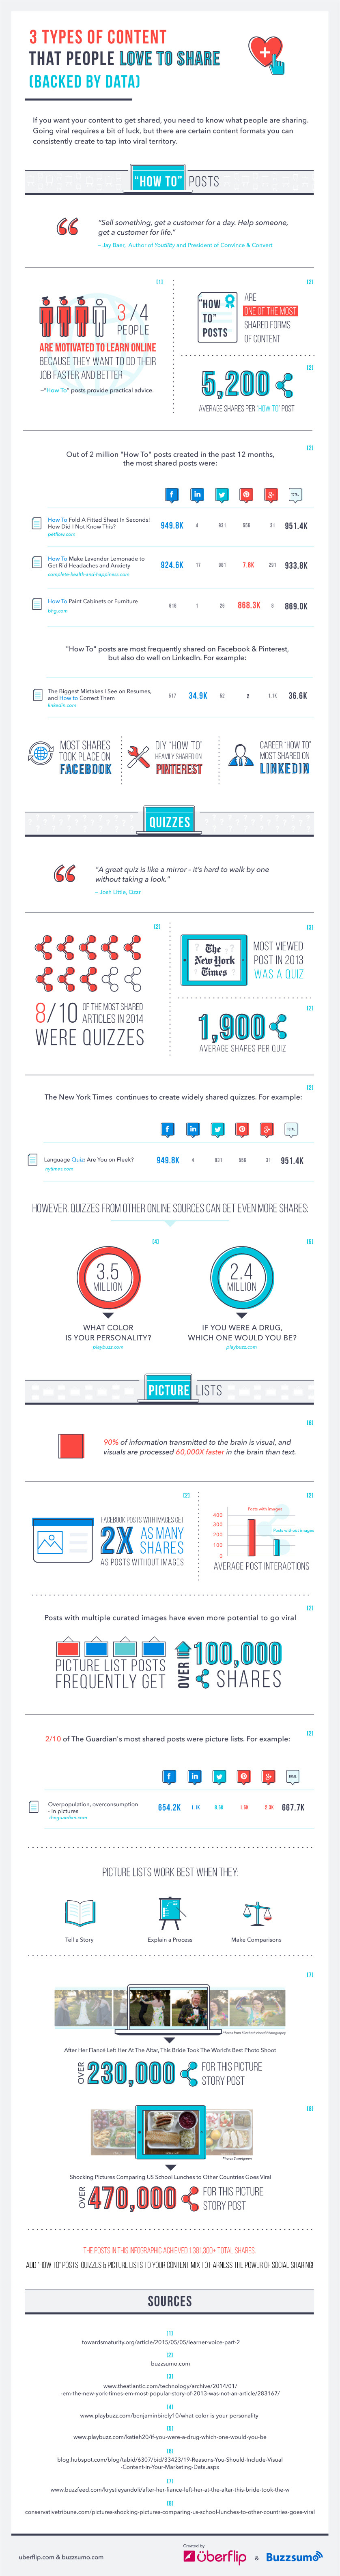 3 Types Of Content That People Love To Share On Social Media - #infographic